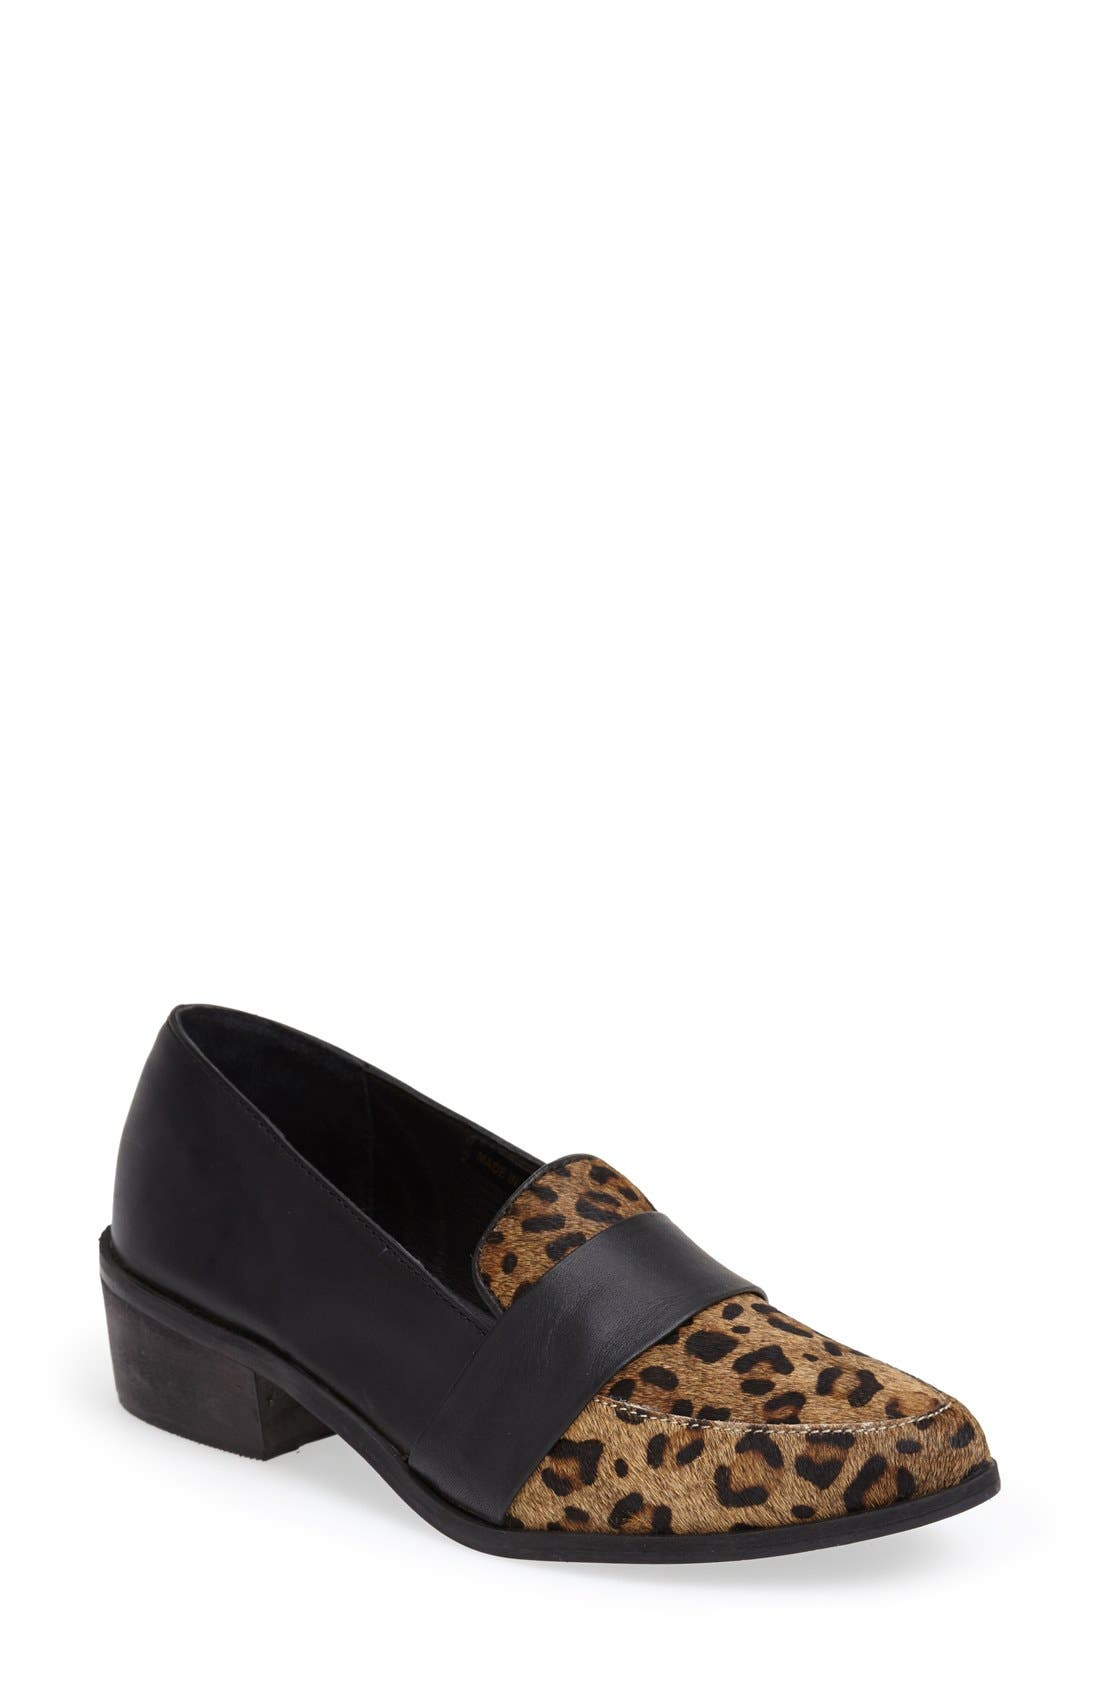 'Baha' Calf Hair and Leather Loafer,                             Main thumbnail 1, color,                             Black Leopard